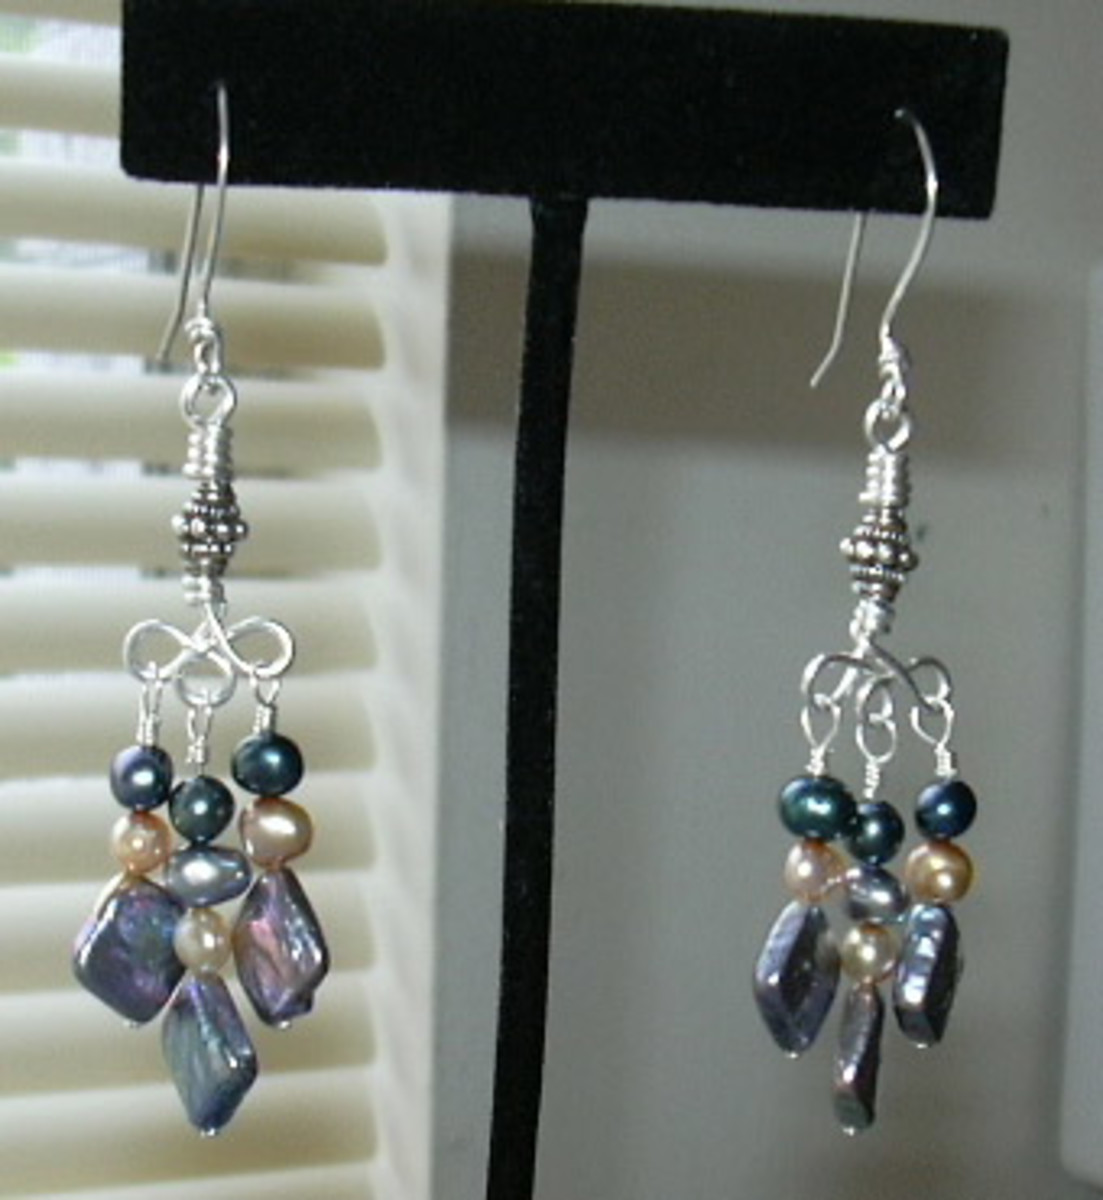 Wire wrapped .925 sterling silver and cultured freshwater pearl chandelier earrings.  I handcrafted all the jewelry wire in this pair, including the ear-wires.